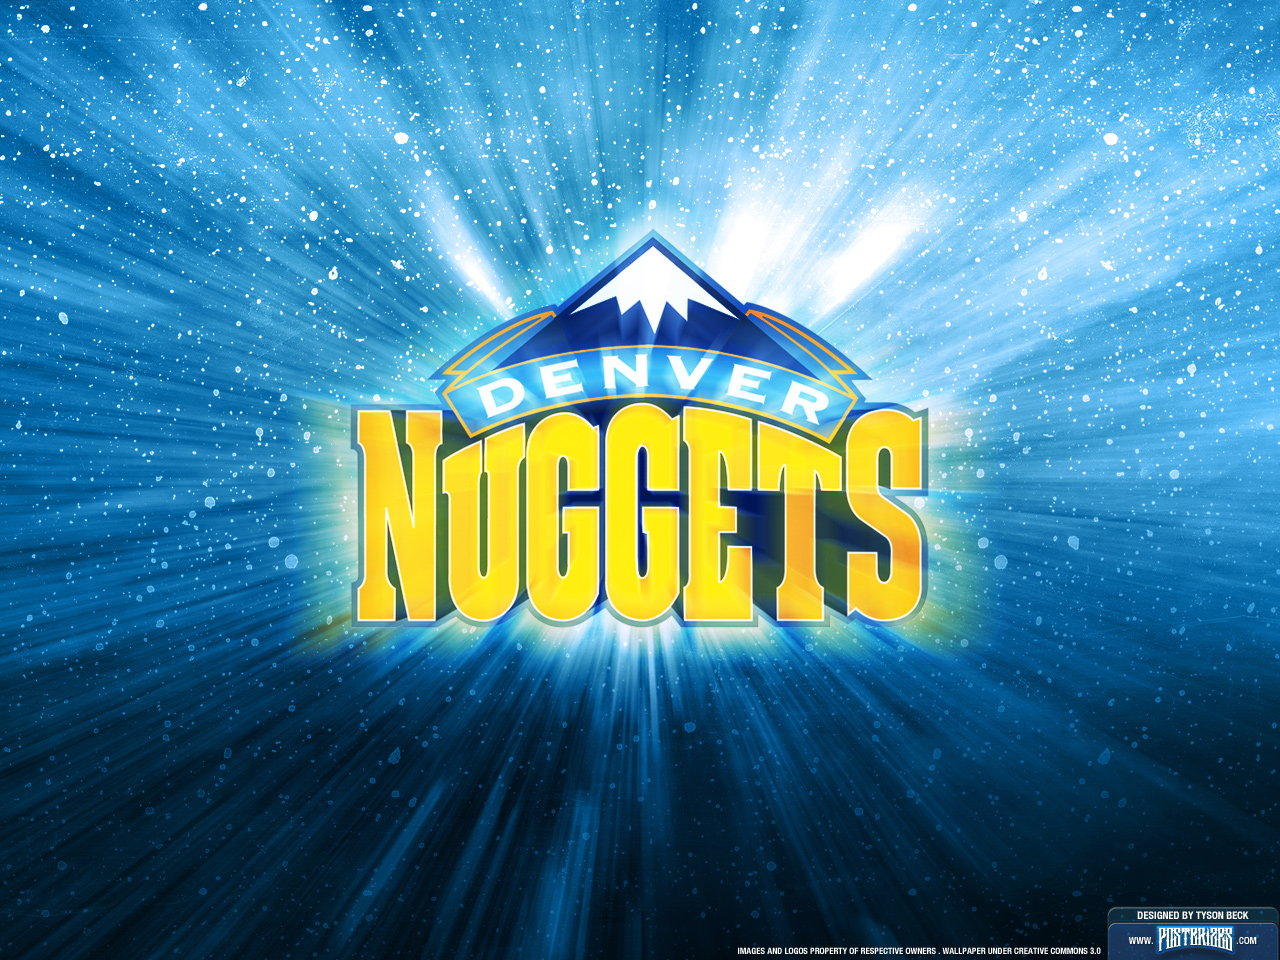 Cancer awareness group helps Nuggets fans save lives